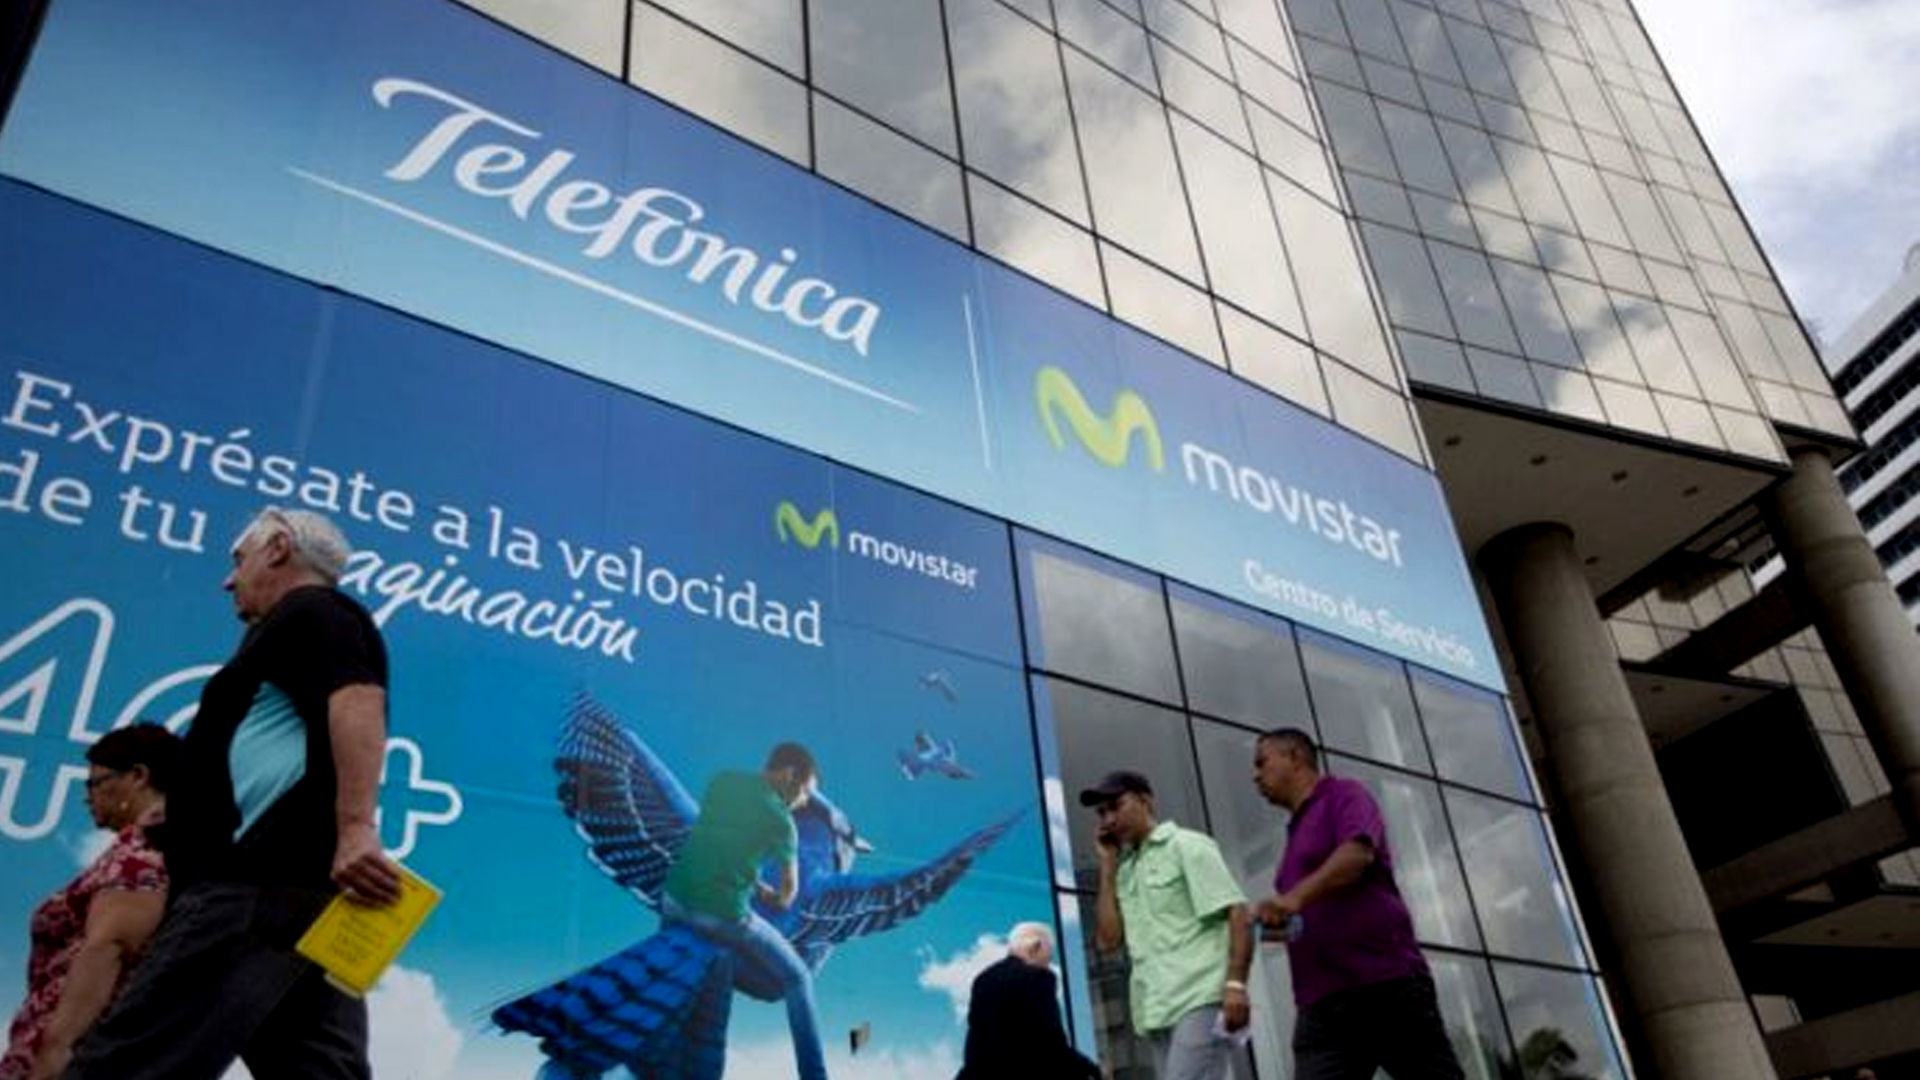 Movistar presenta fallas - acn